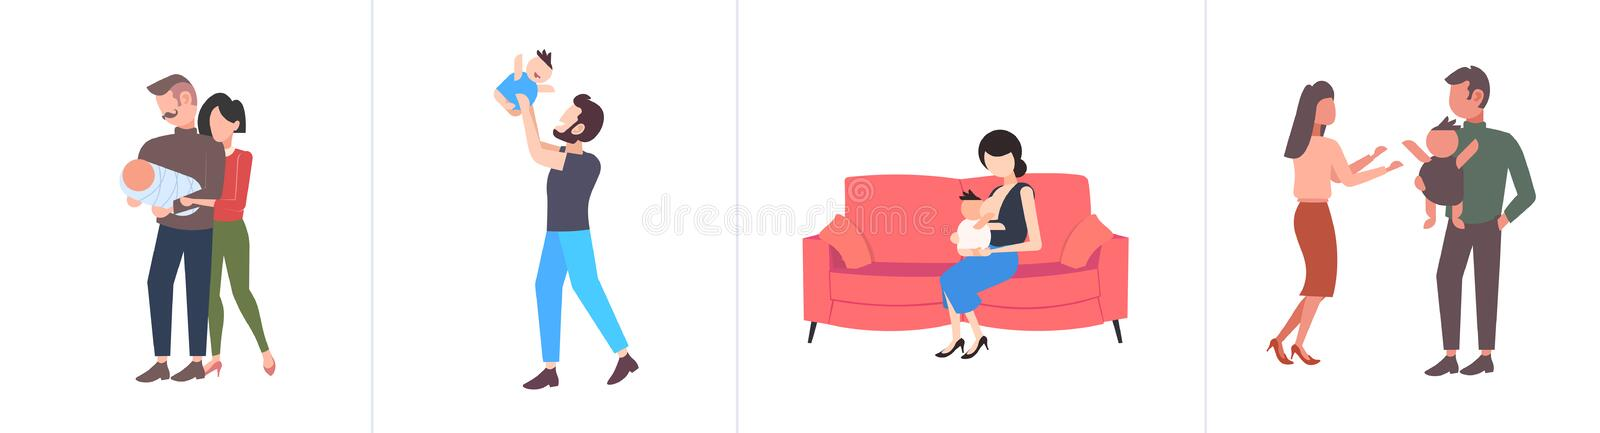 Set parents and their newborn having fun together different parenthood concepts collection flat full length horizontal. Vector illustration stock illustration